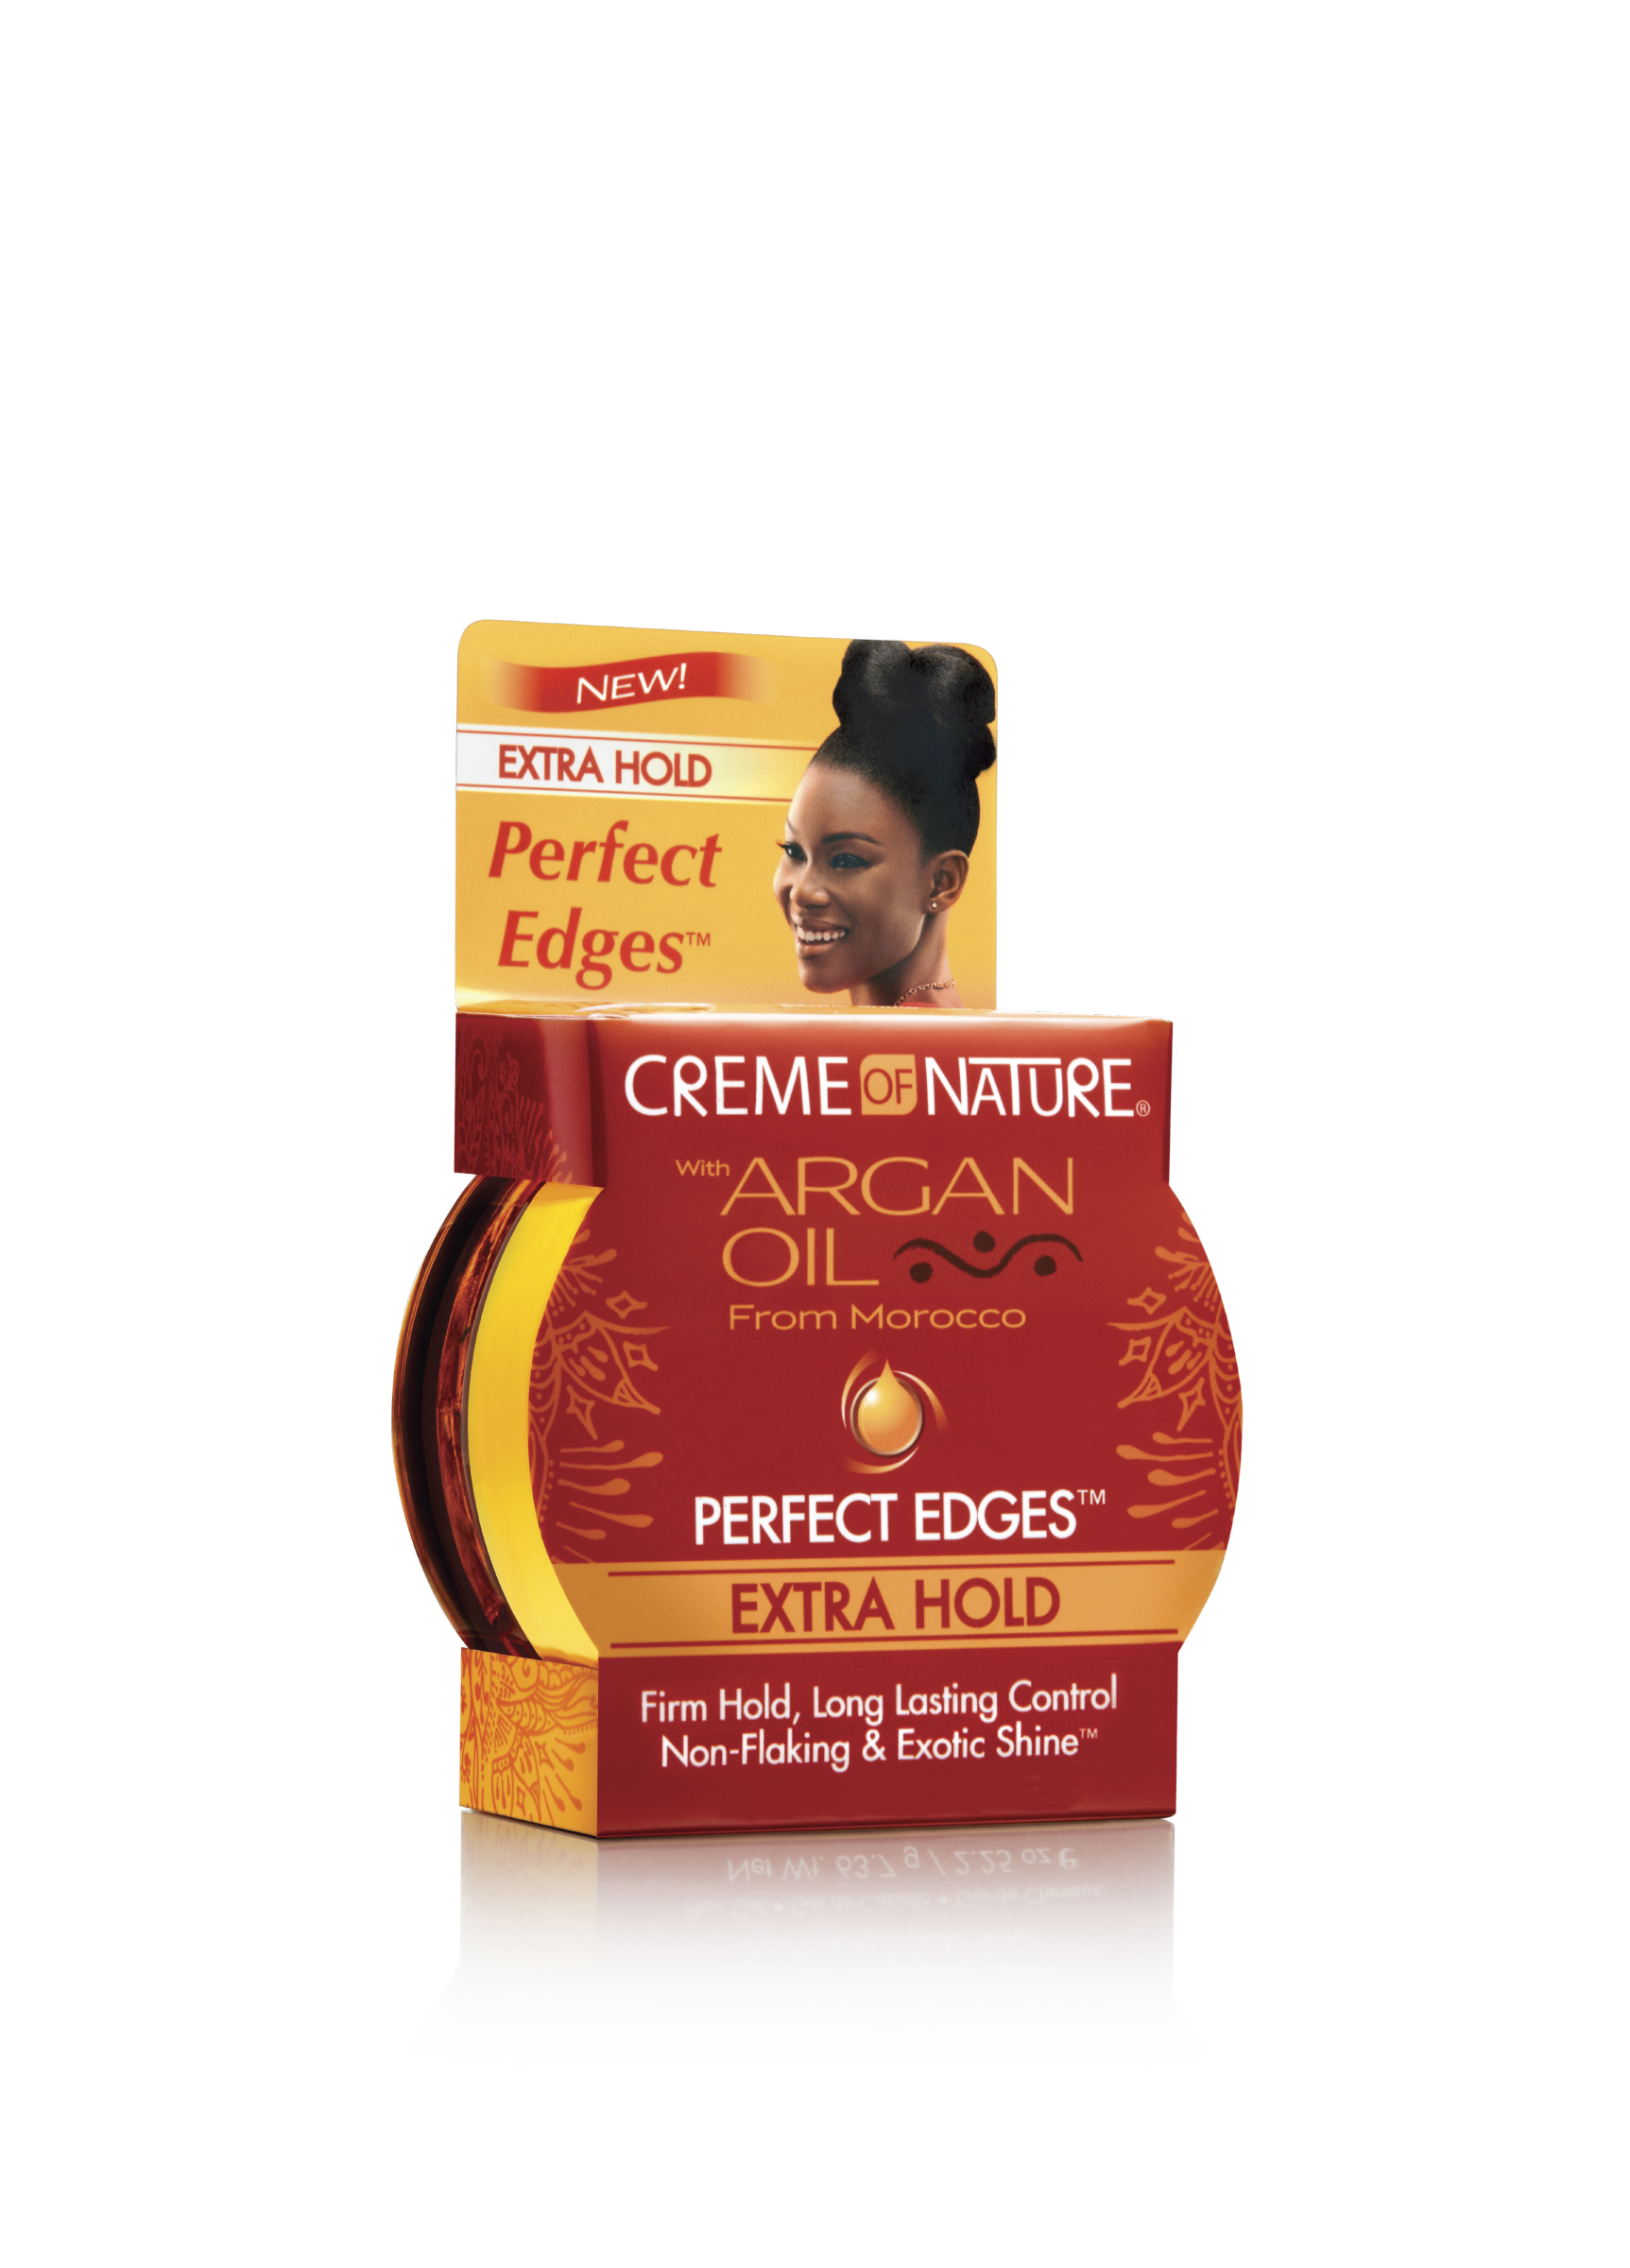 Crème of Nature Argan Oil Perfect Edges Extra Hold by RevlonPro